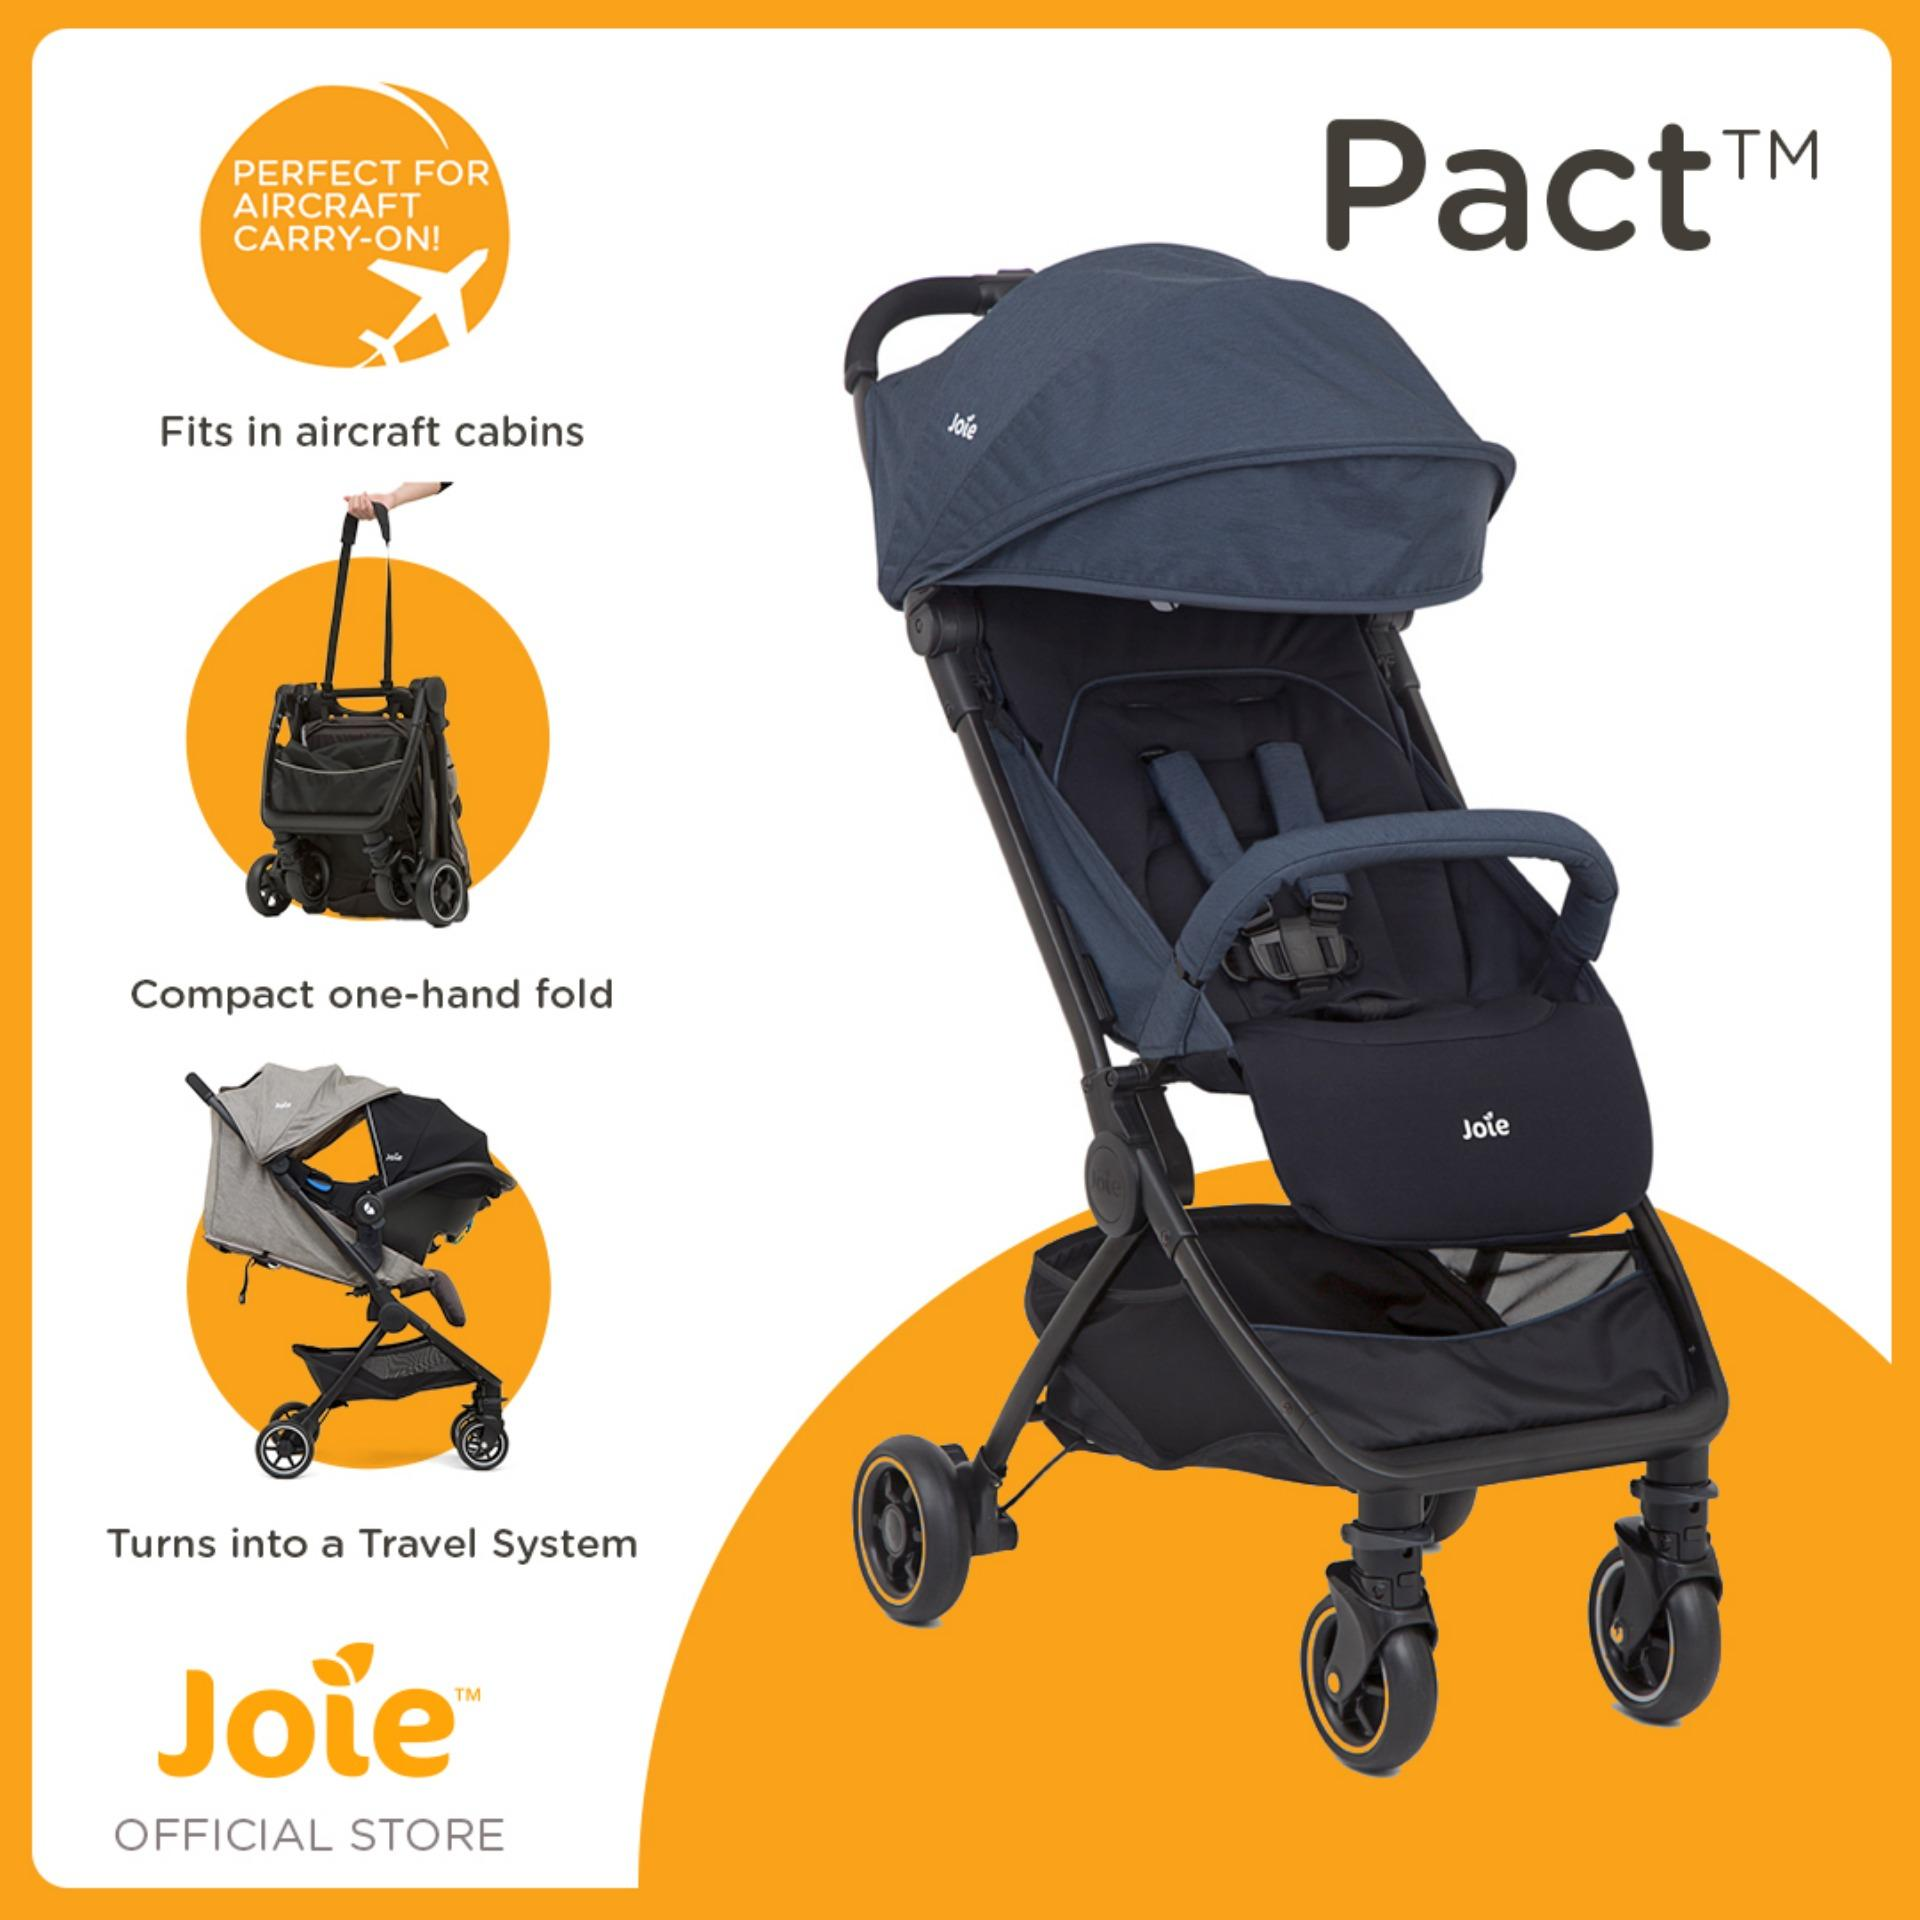 Joie Pact Stroller Compact And Lightweight Navy Blazer By Joie Baby Official Store